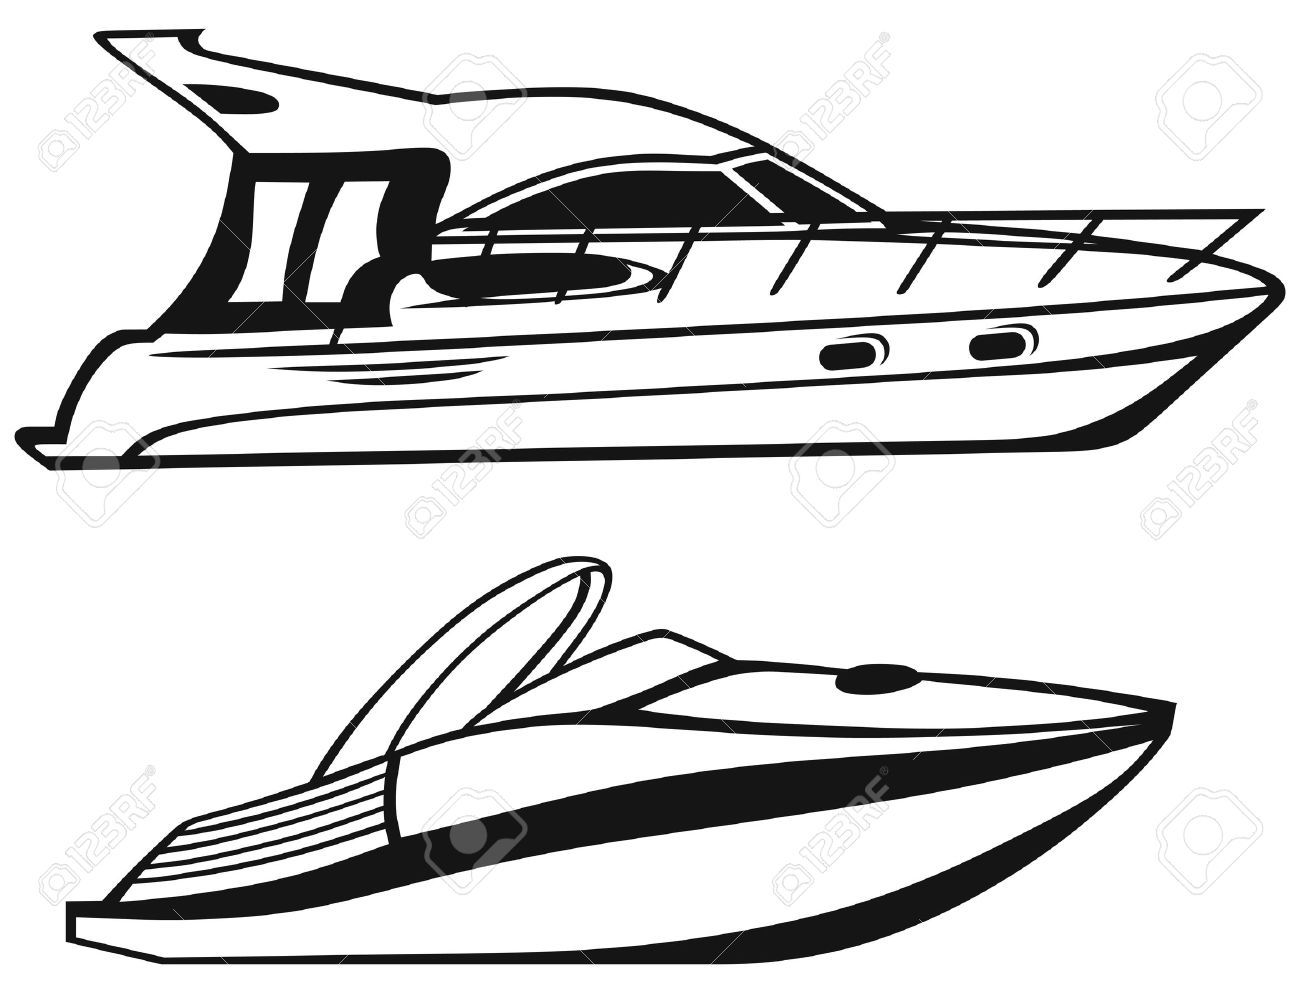 Yacht clipart black and white 2 » Clipart Portal.